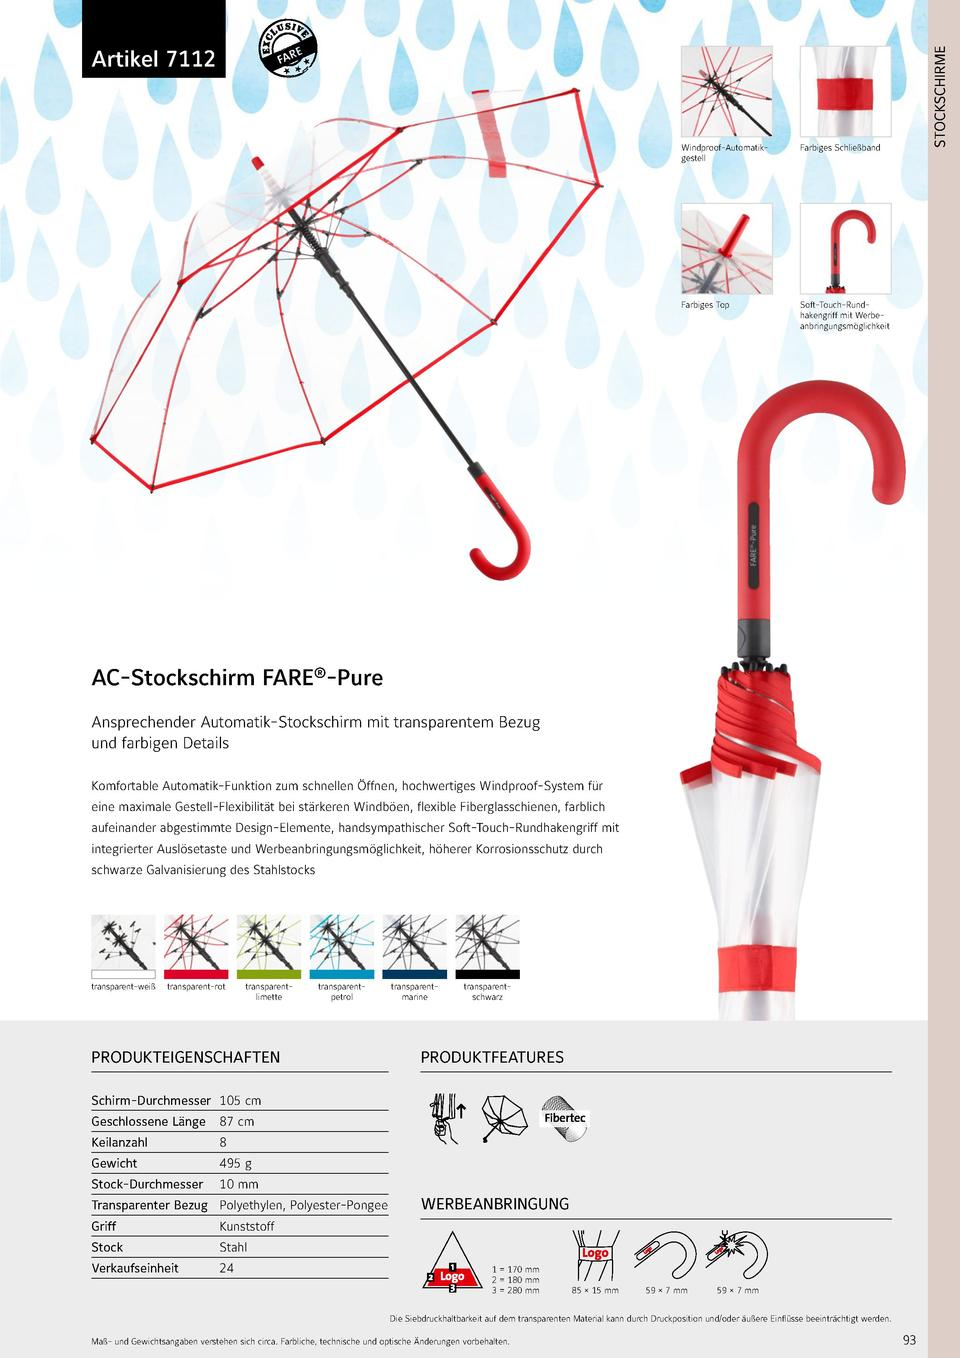 STOCKSCHIRME  7112  Artikel 7112  Windproof-Automatikgestell  Farbiges Schlie  band  Farbiges Top  Soft-Touch-Rundhakengri...